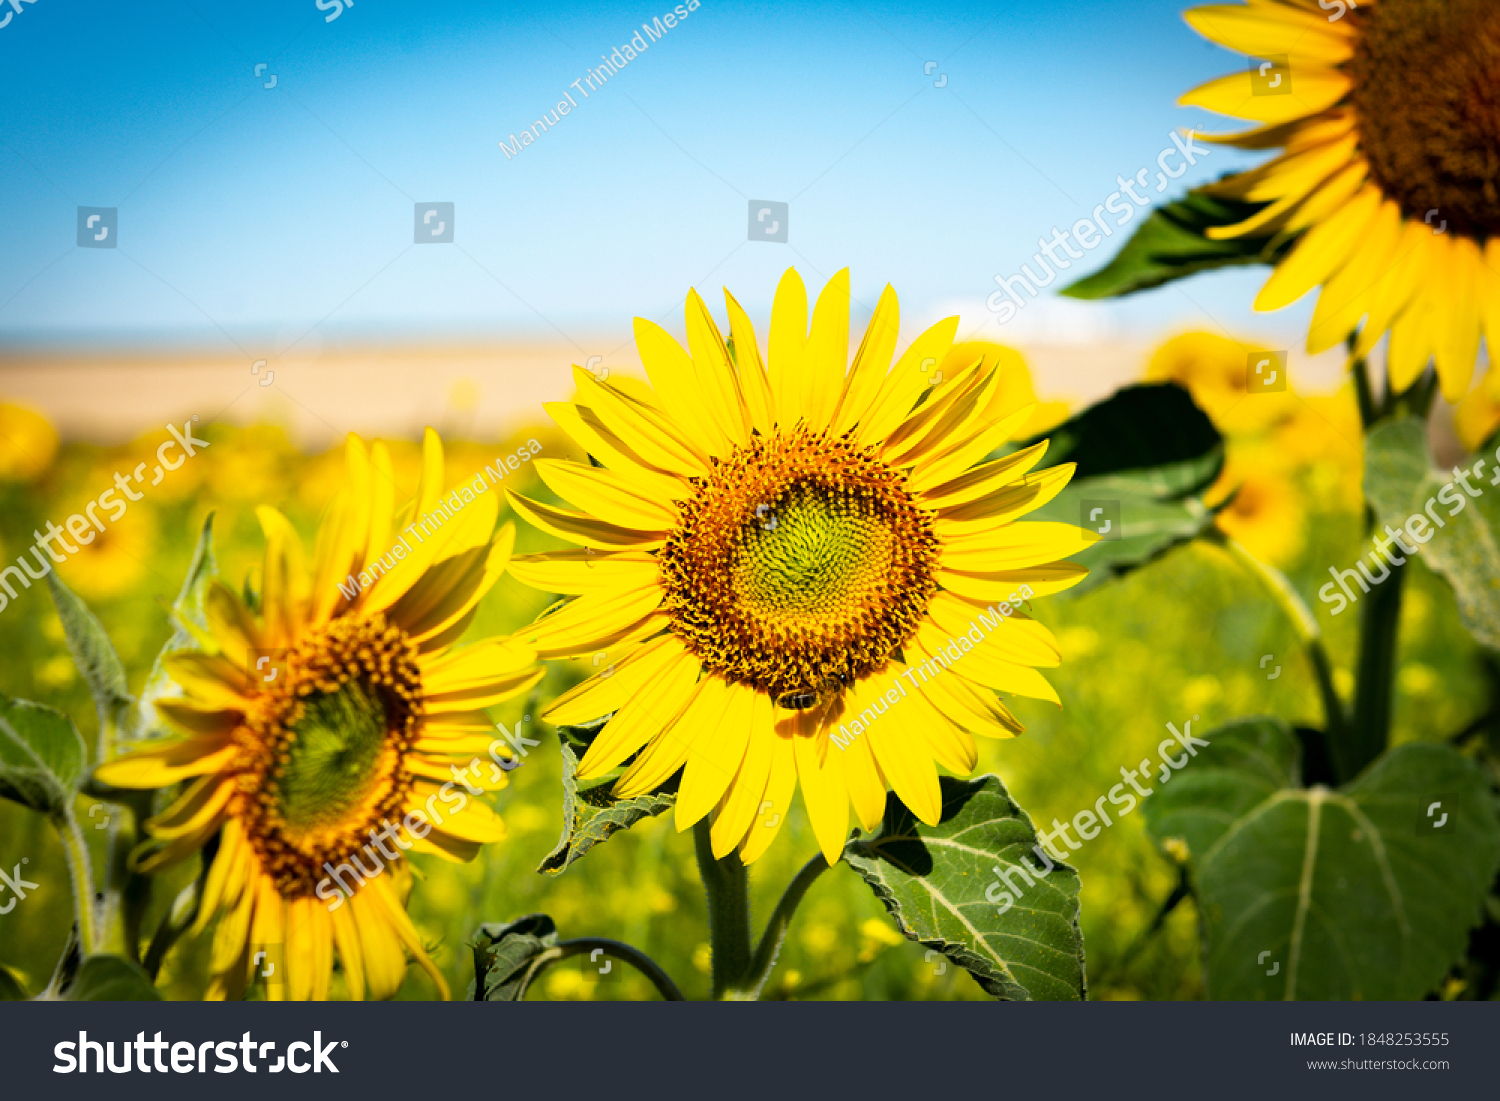 A bee feeds on a sunflower